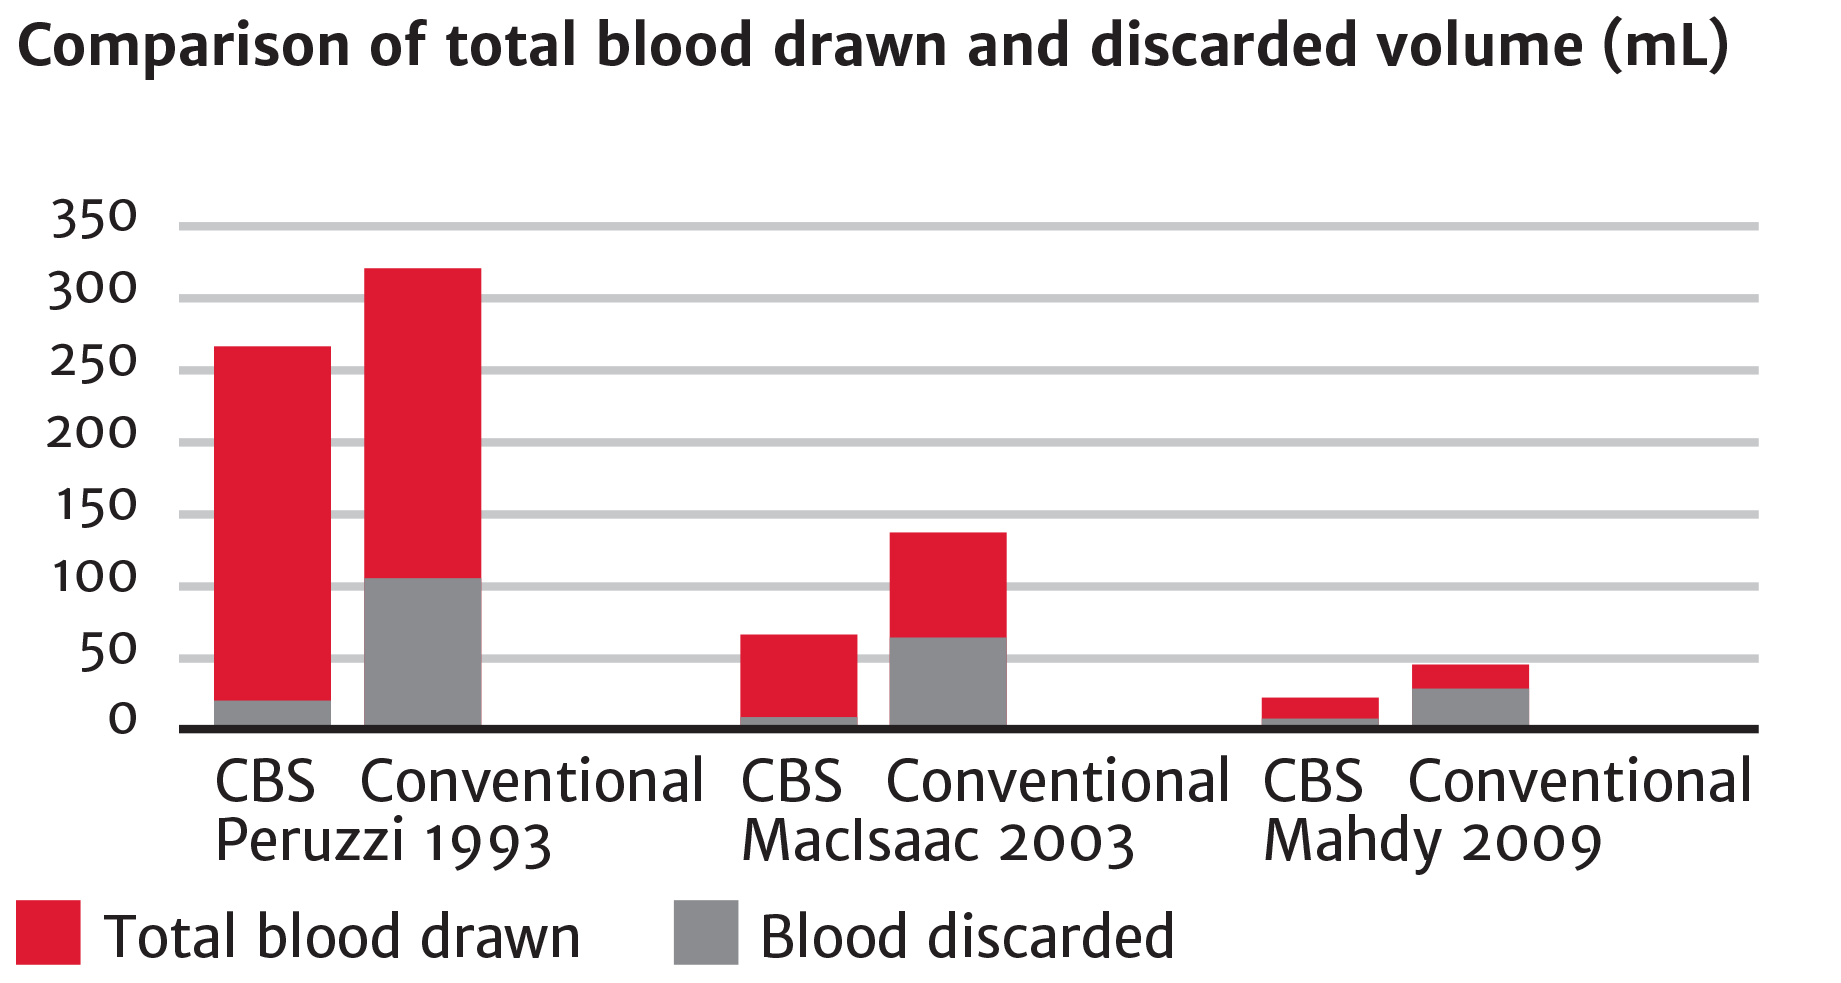 Comparison of total blood drawn and discarded